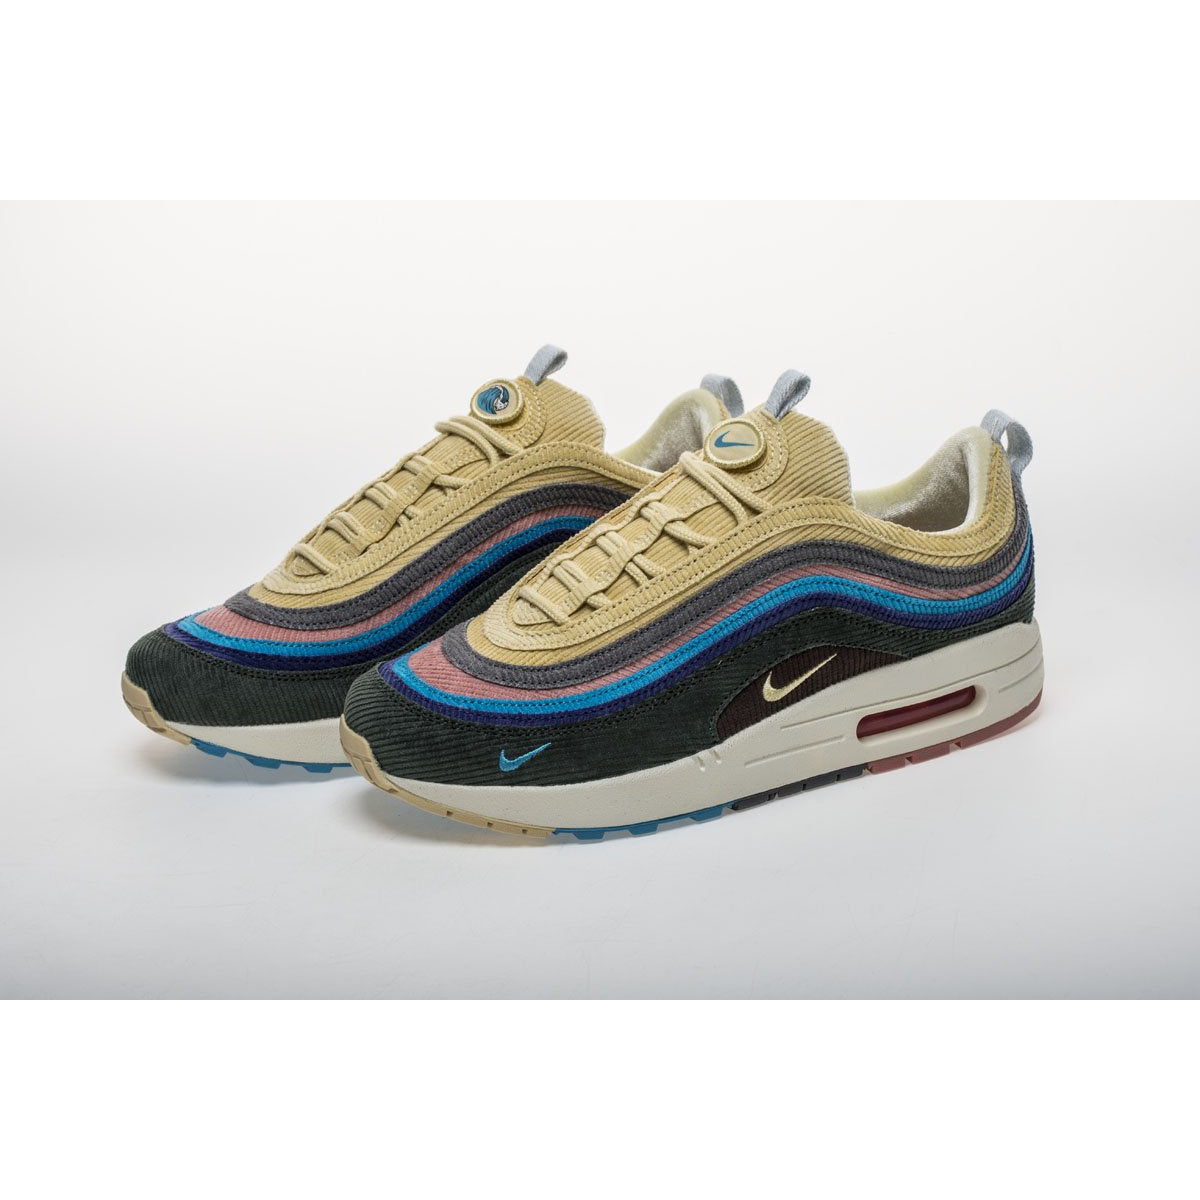 AIR MAX 97 x SEAN WOTHERSPOON